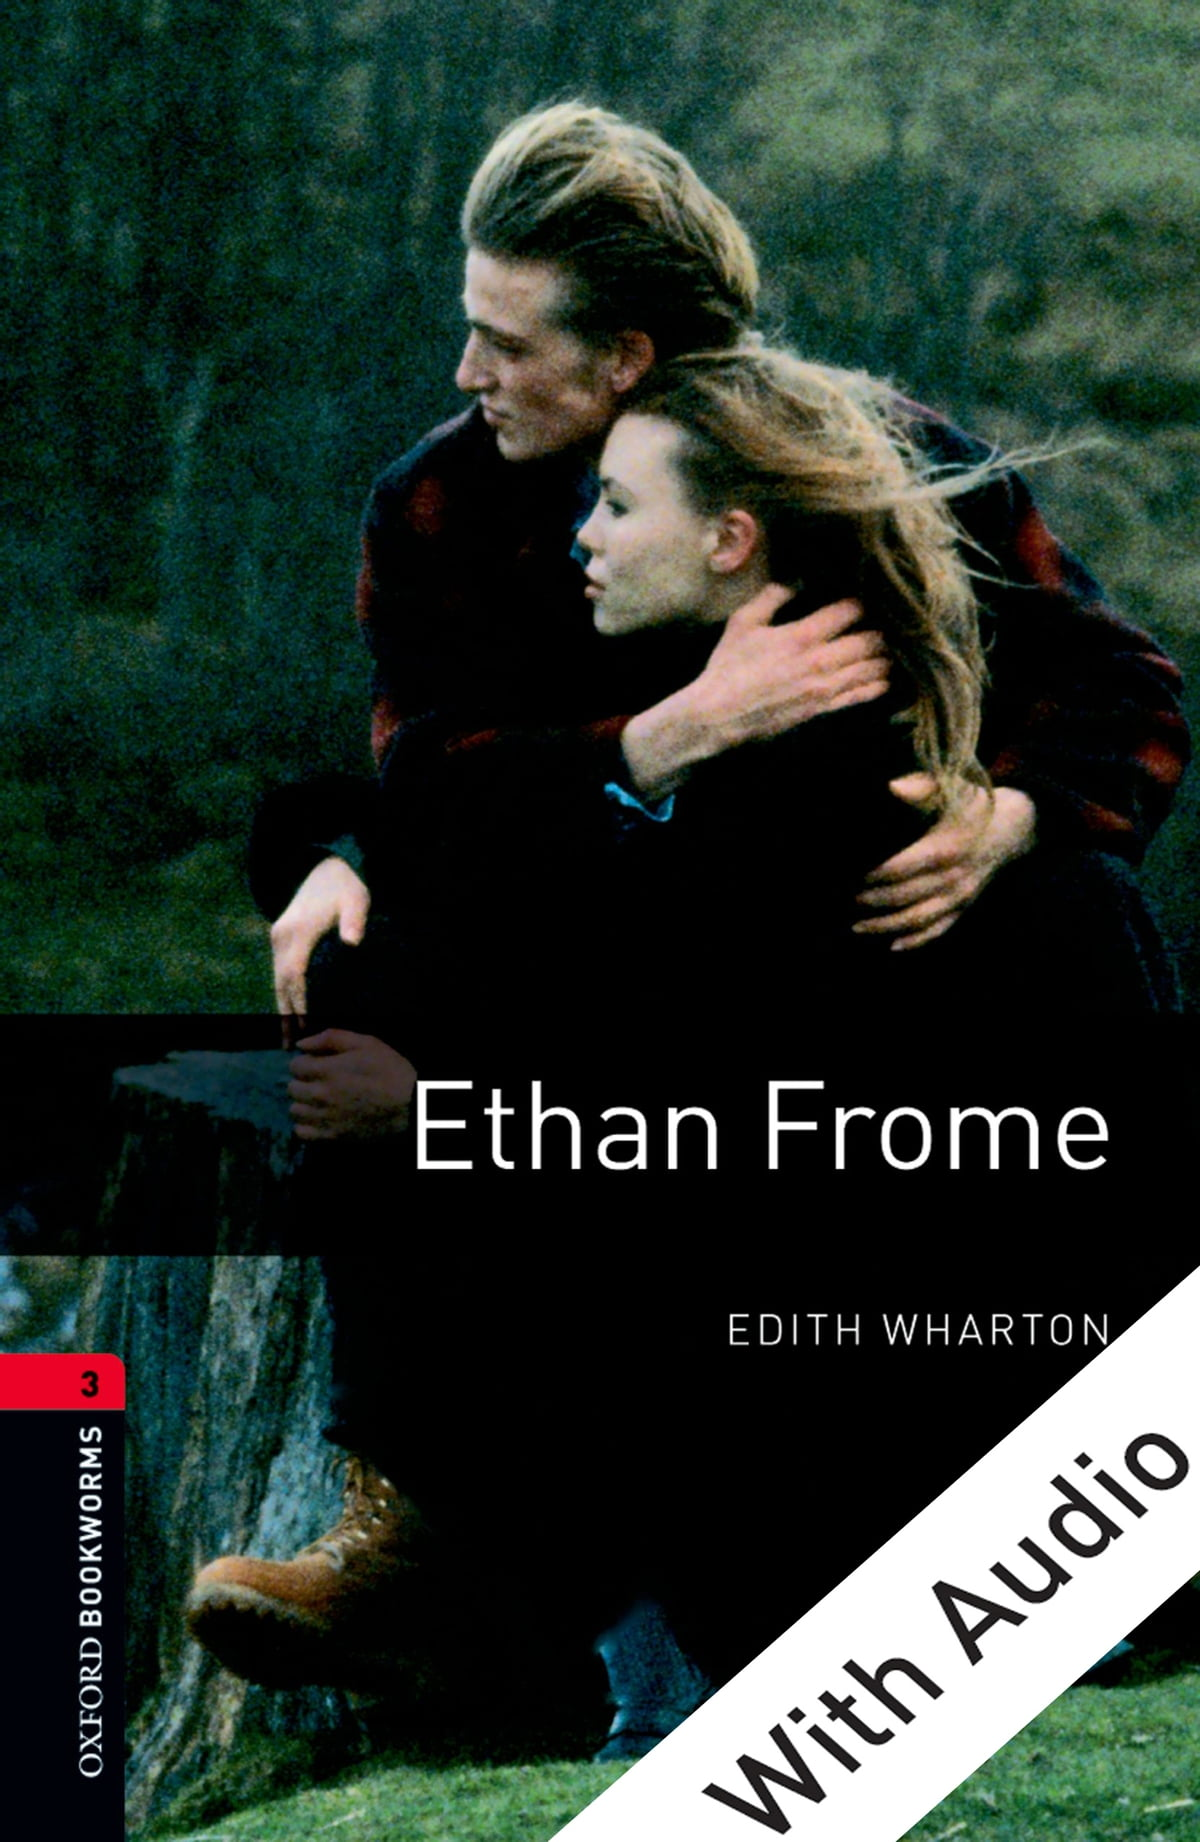 Oxford Bookworms Library Ethan Frome With Audio Level 3 Oxford Bookworms Library